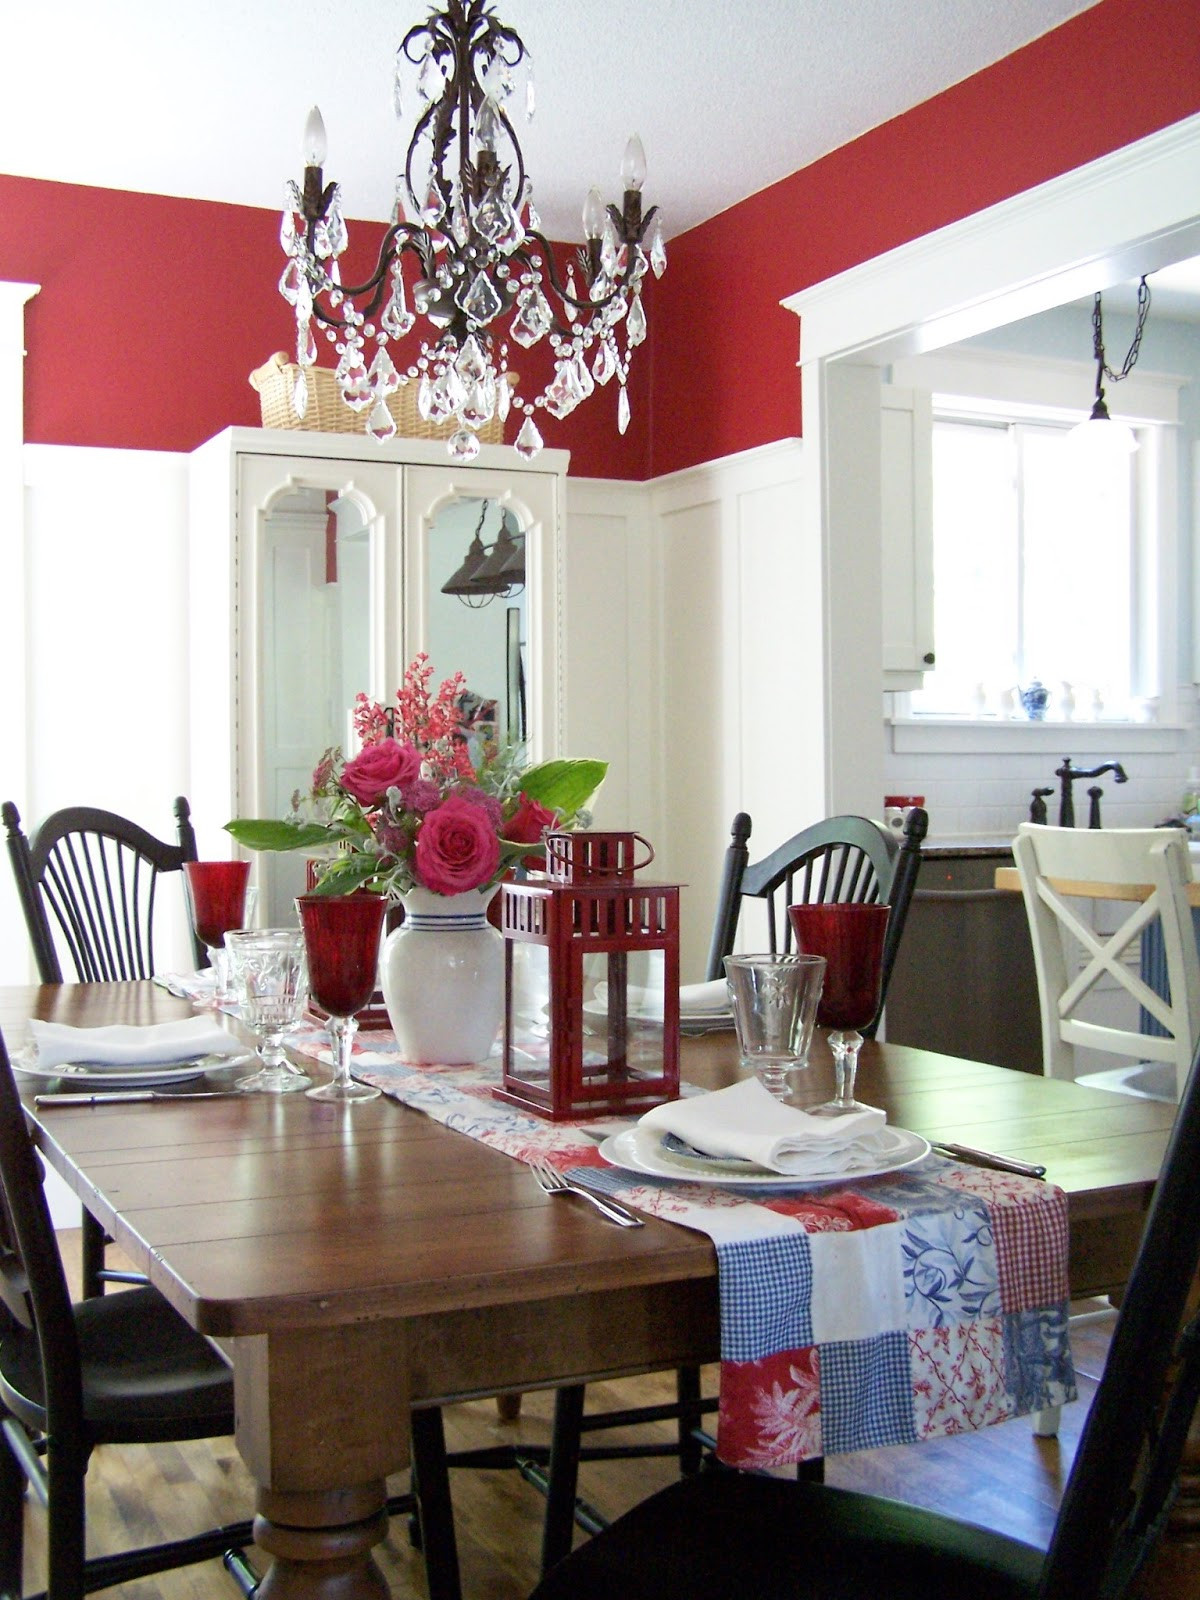 Best ideas about The Dining Room . Save or Pin Delorme Designs RED DINING ROOMS PART 2 Now.